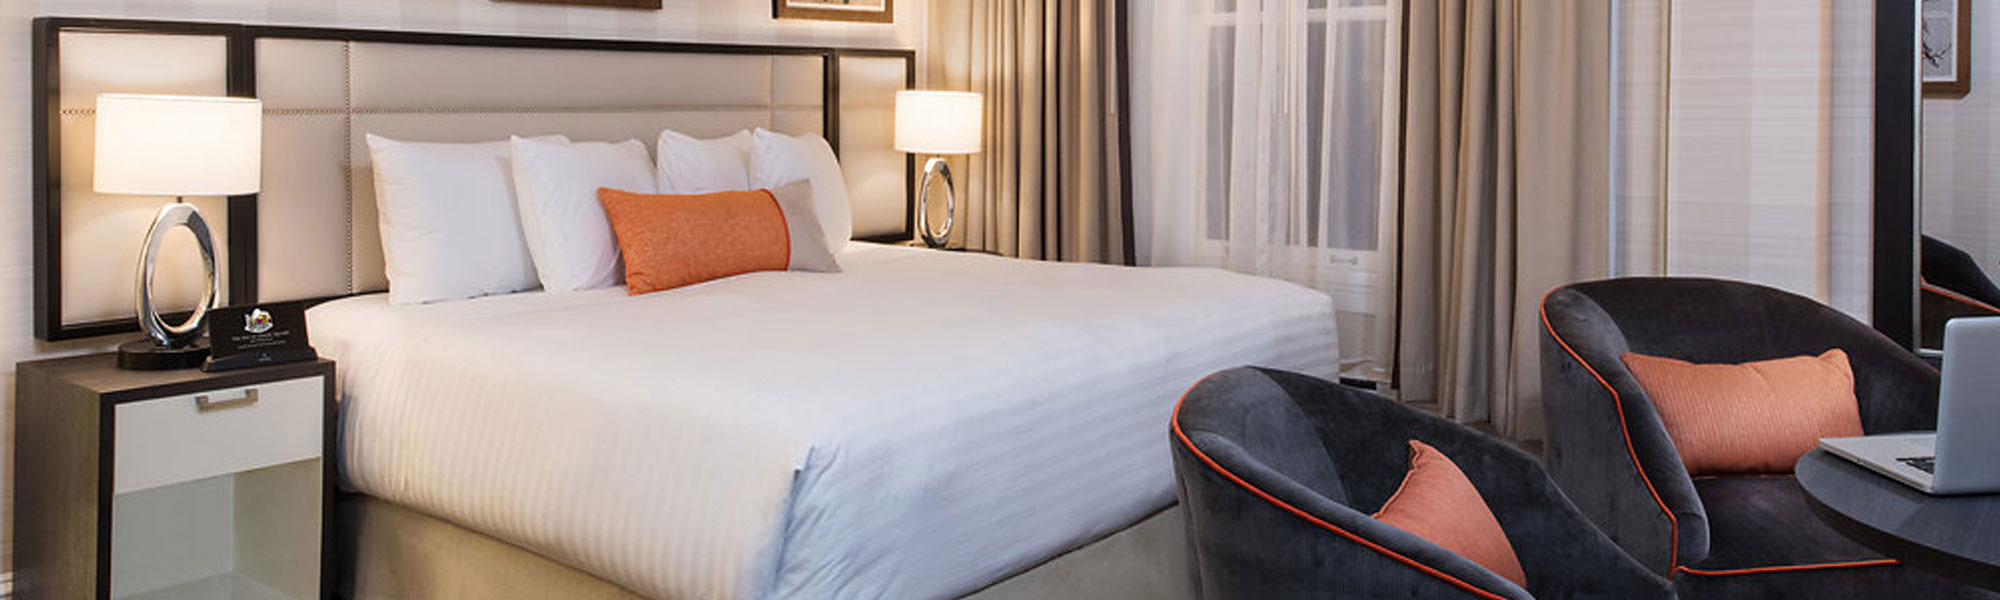 Extended Stay Package at The Inn at Union Square San Francisco, California